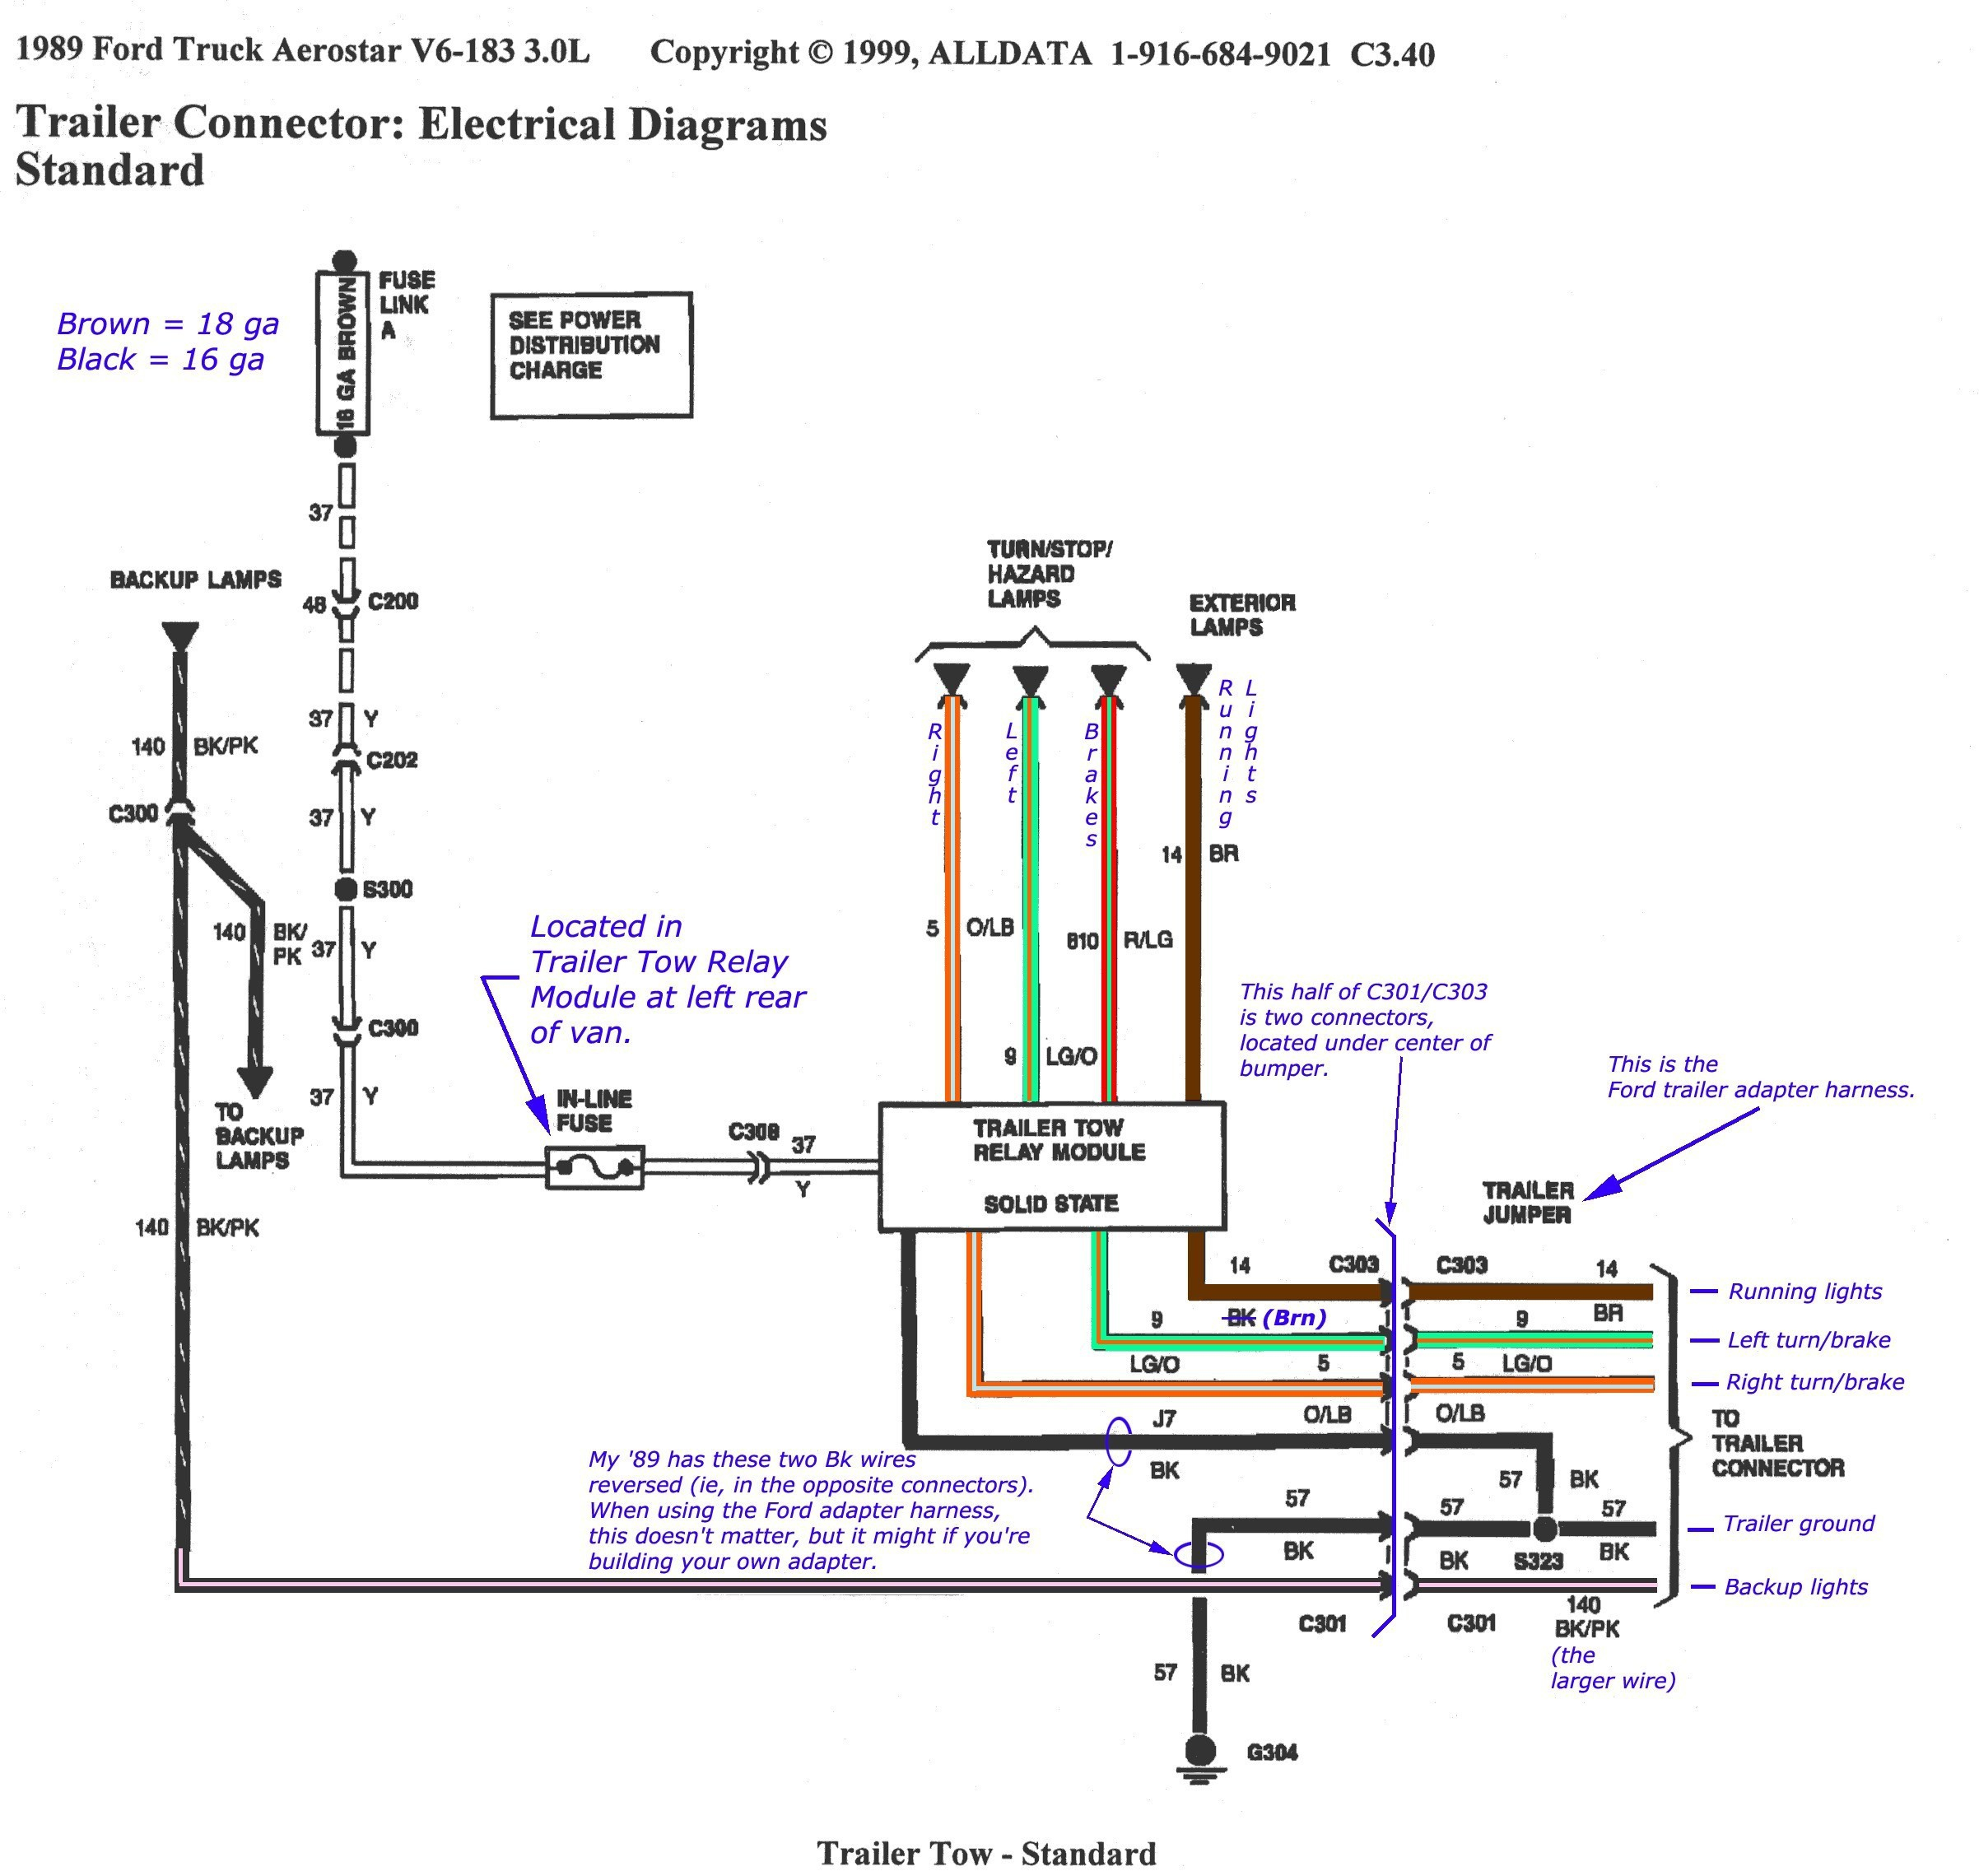 Great Dane Trailer Wiring Diagram | Wiring Diagram - Great Dane Trailer Wiring Diagram